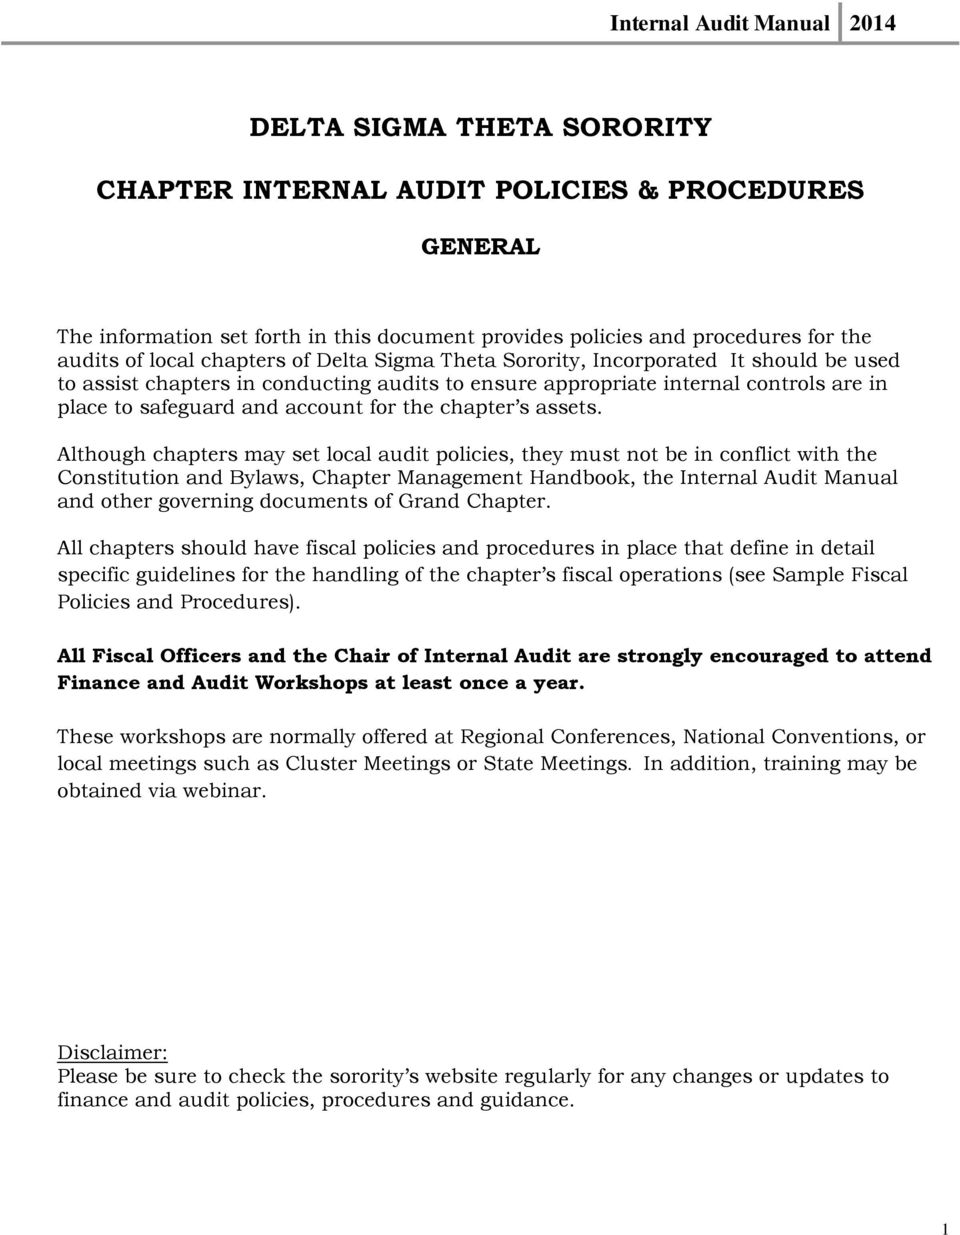 Although chapters may set local audit policies, they must not be in  conflict with the